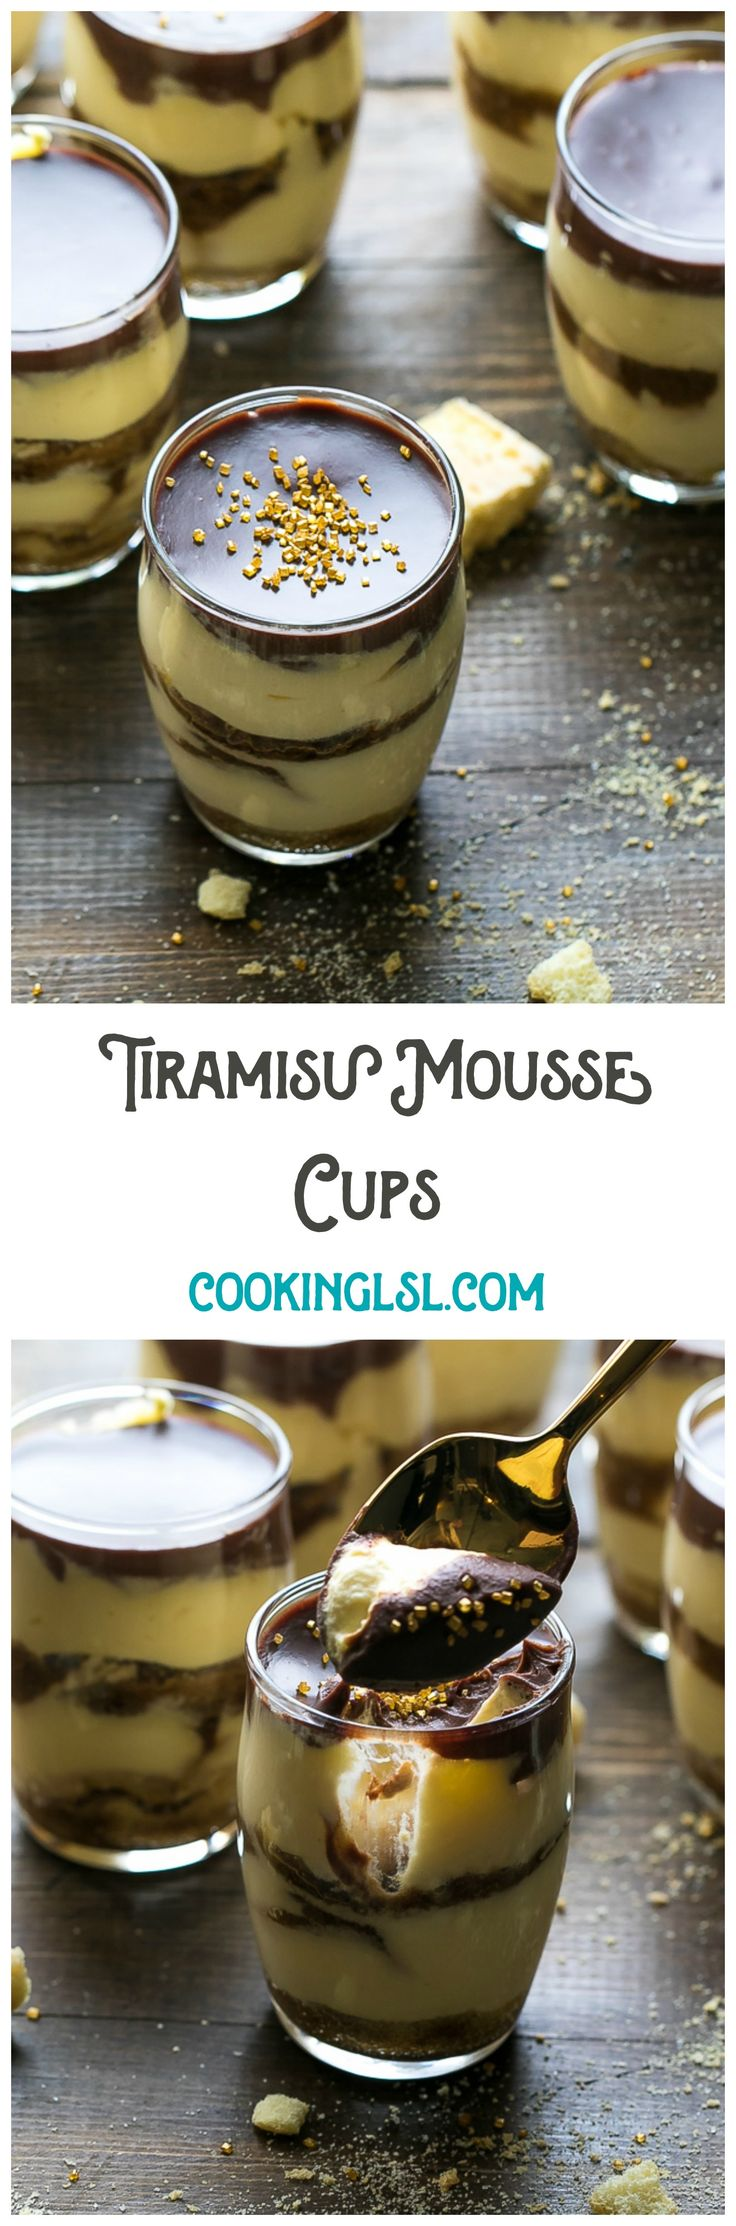 Easy Tiramisu Mousse Cups. Dessert in a cup, with chocolate ganache. Contains raw eggs.